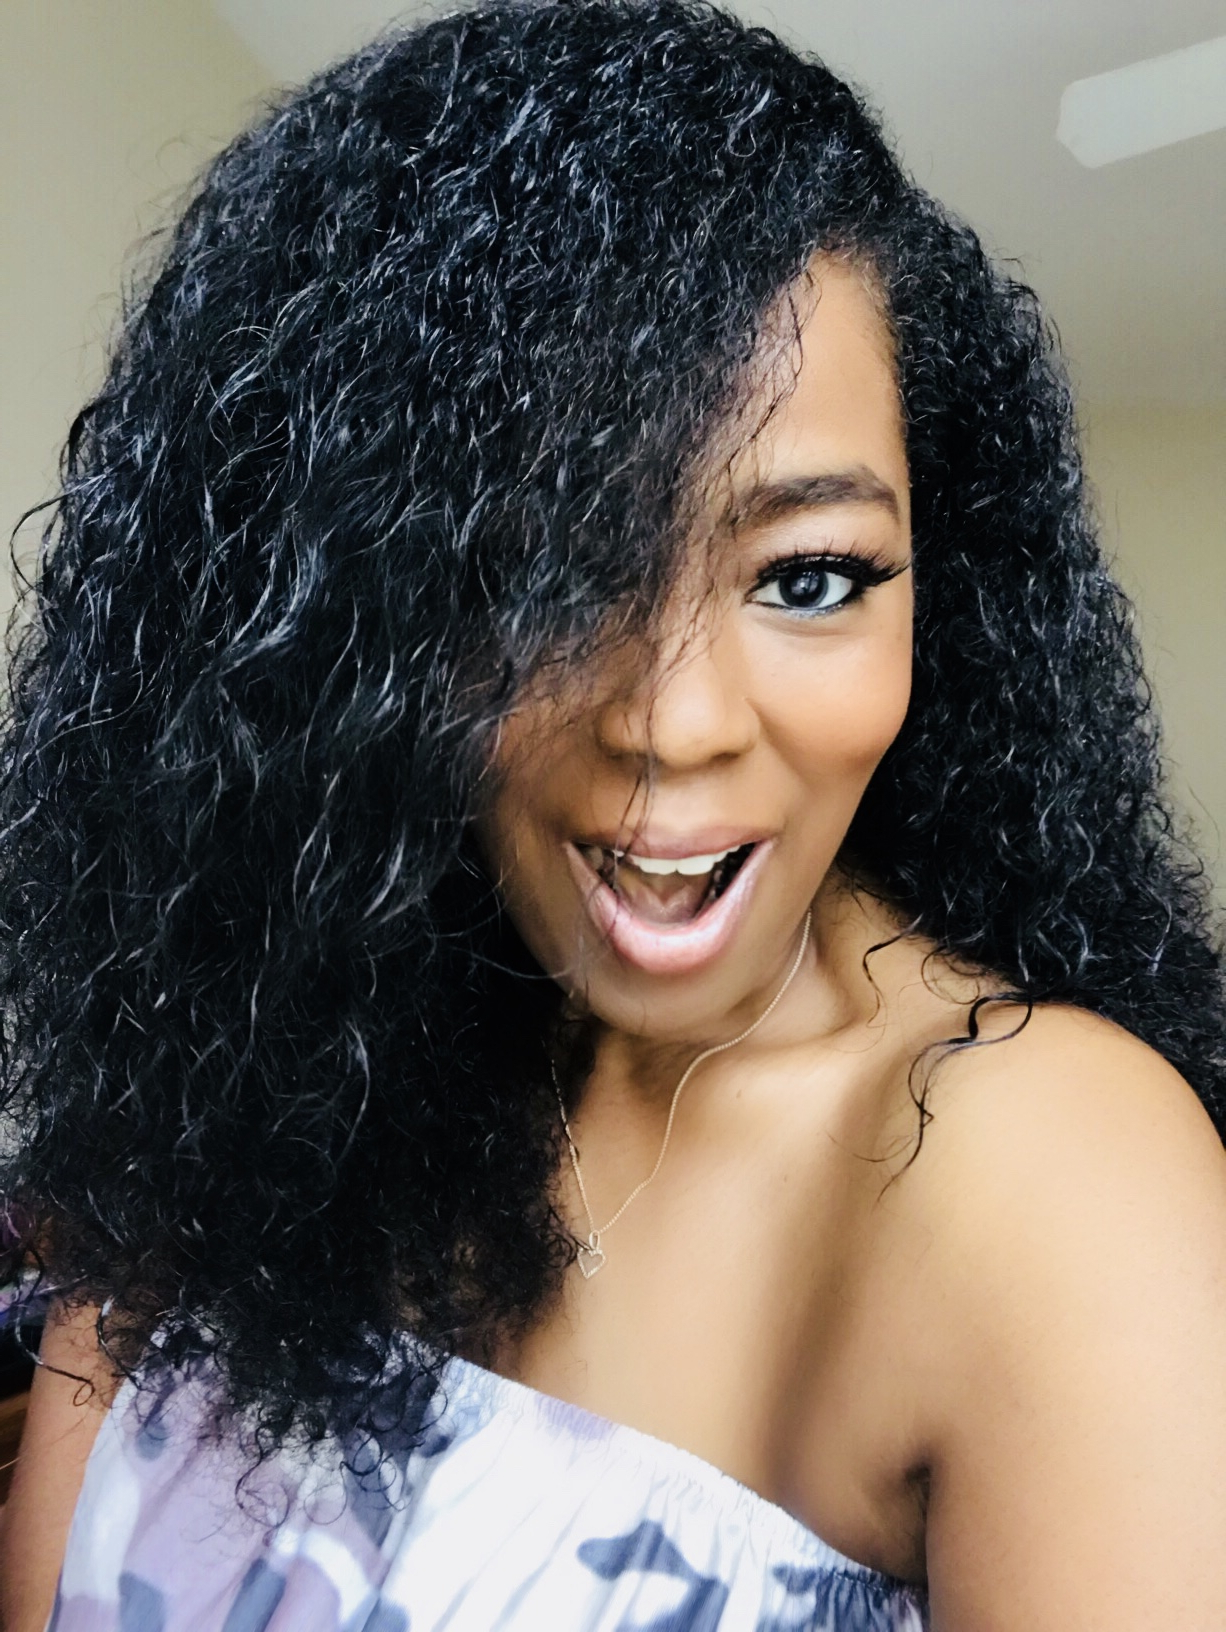 Get The Look: Smooth N Shine Curly Line! – Talking With Tami Within Curly Hairstyles With Shine (Gallery 22 of 25)